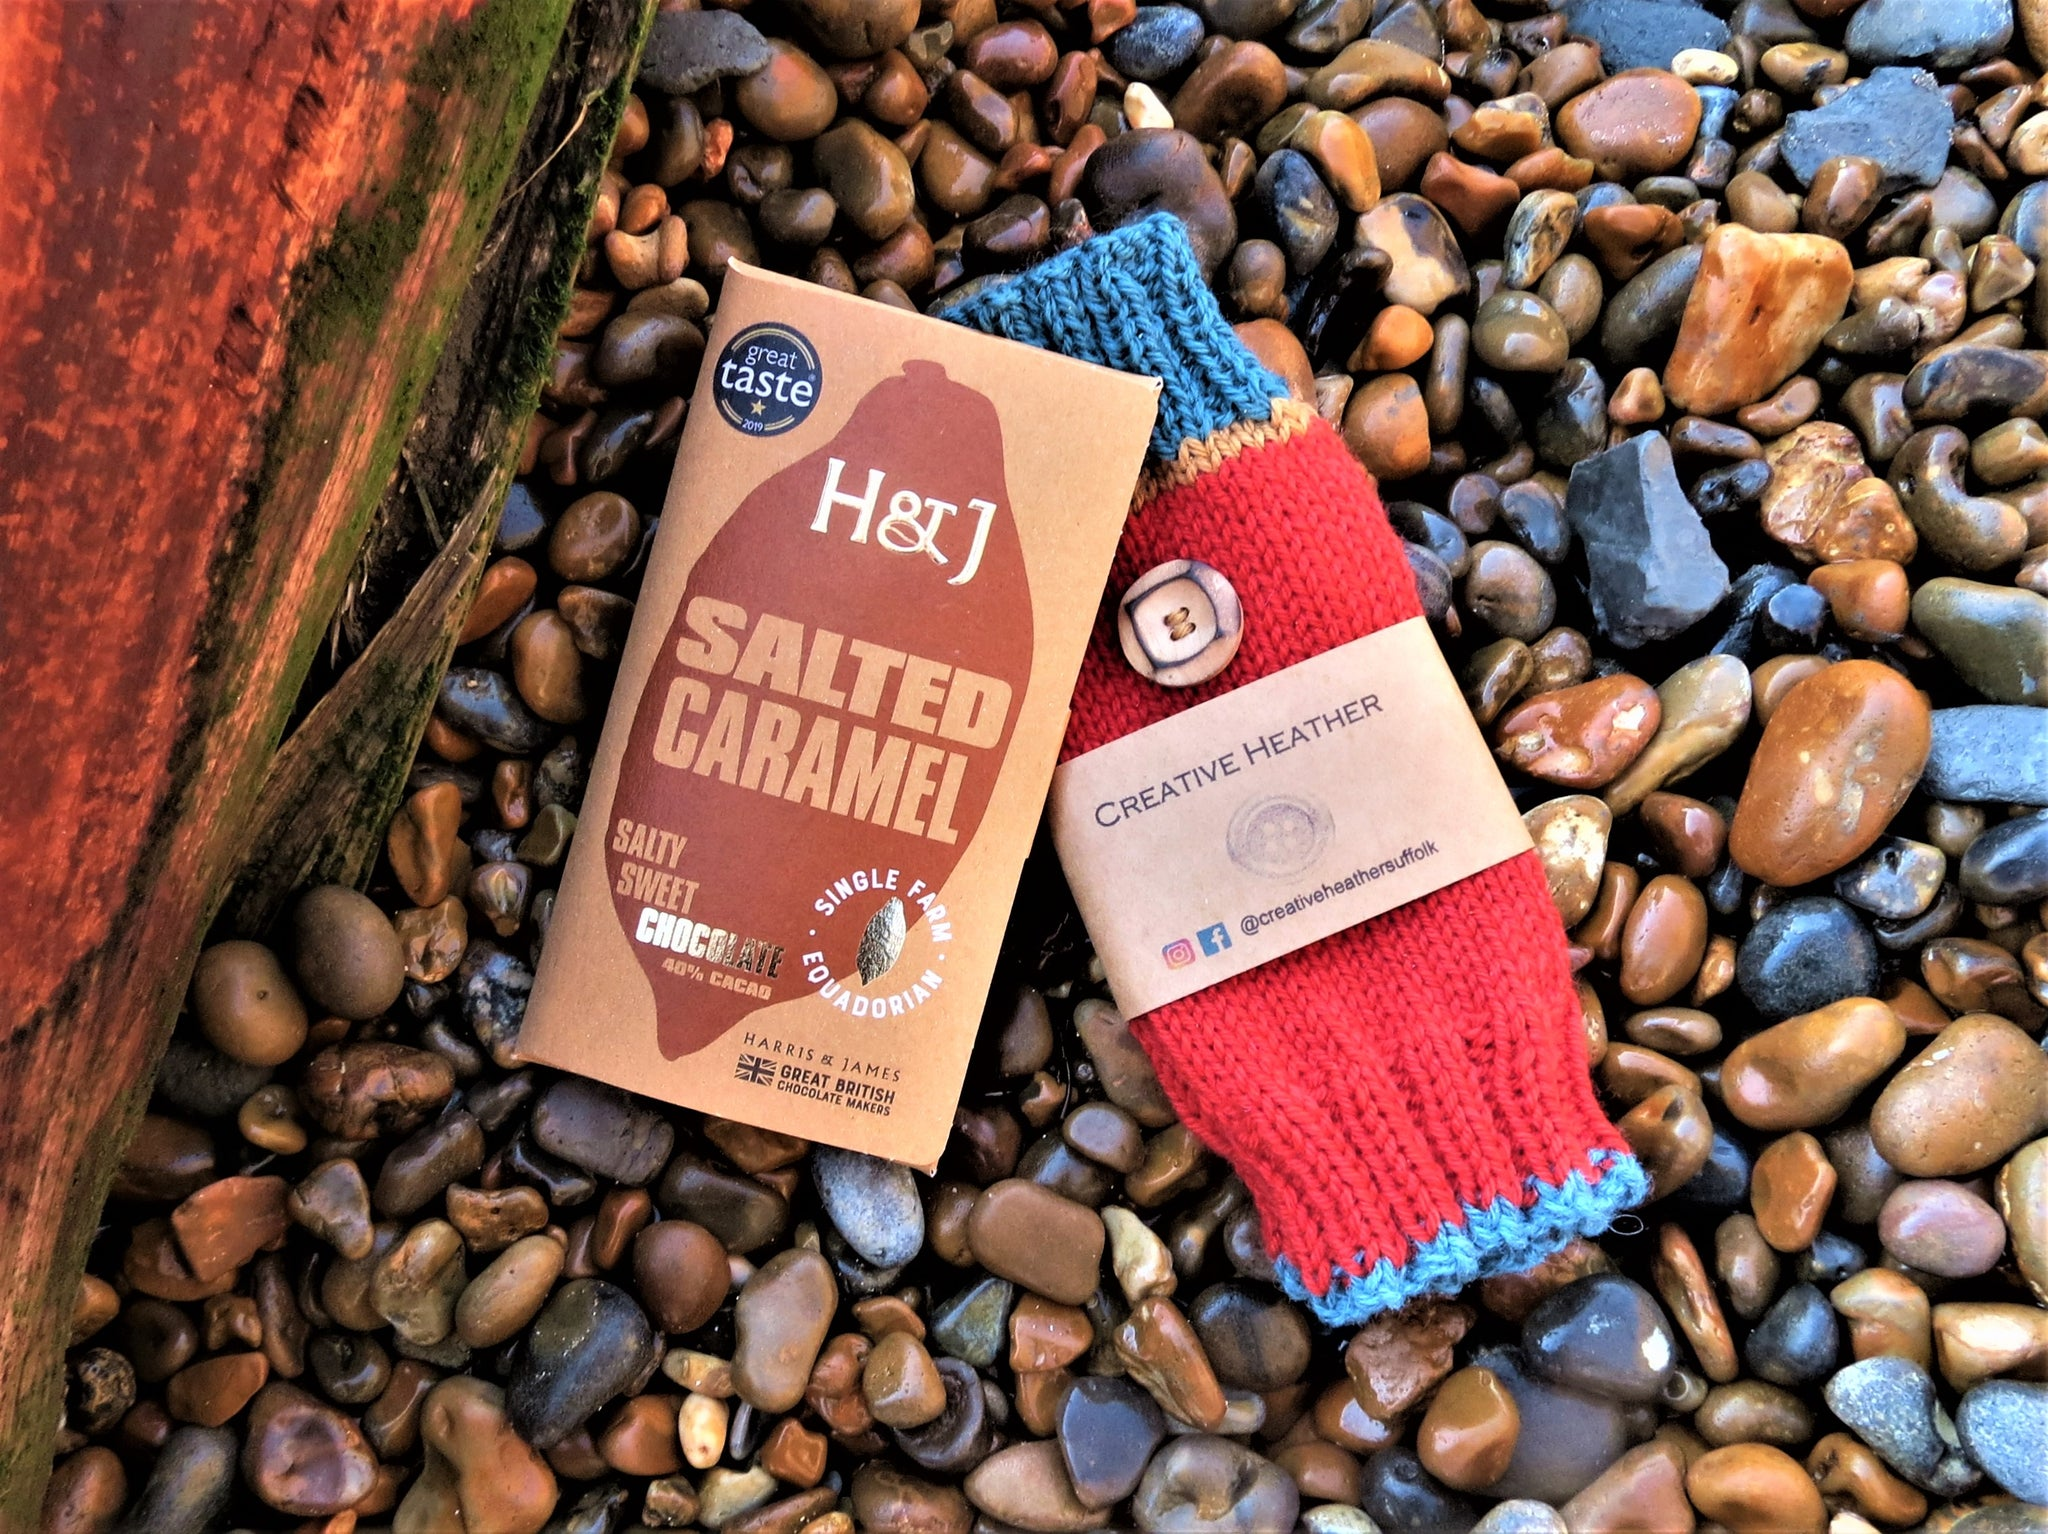 The Cosy Couple Box contents - wrist warmers and H&J chocolate - on a beach setting